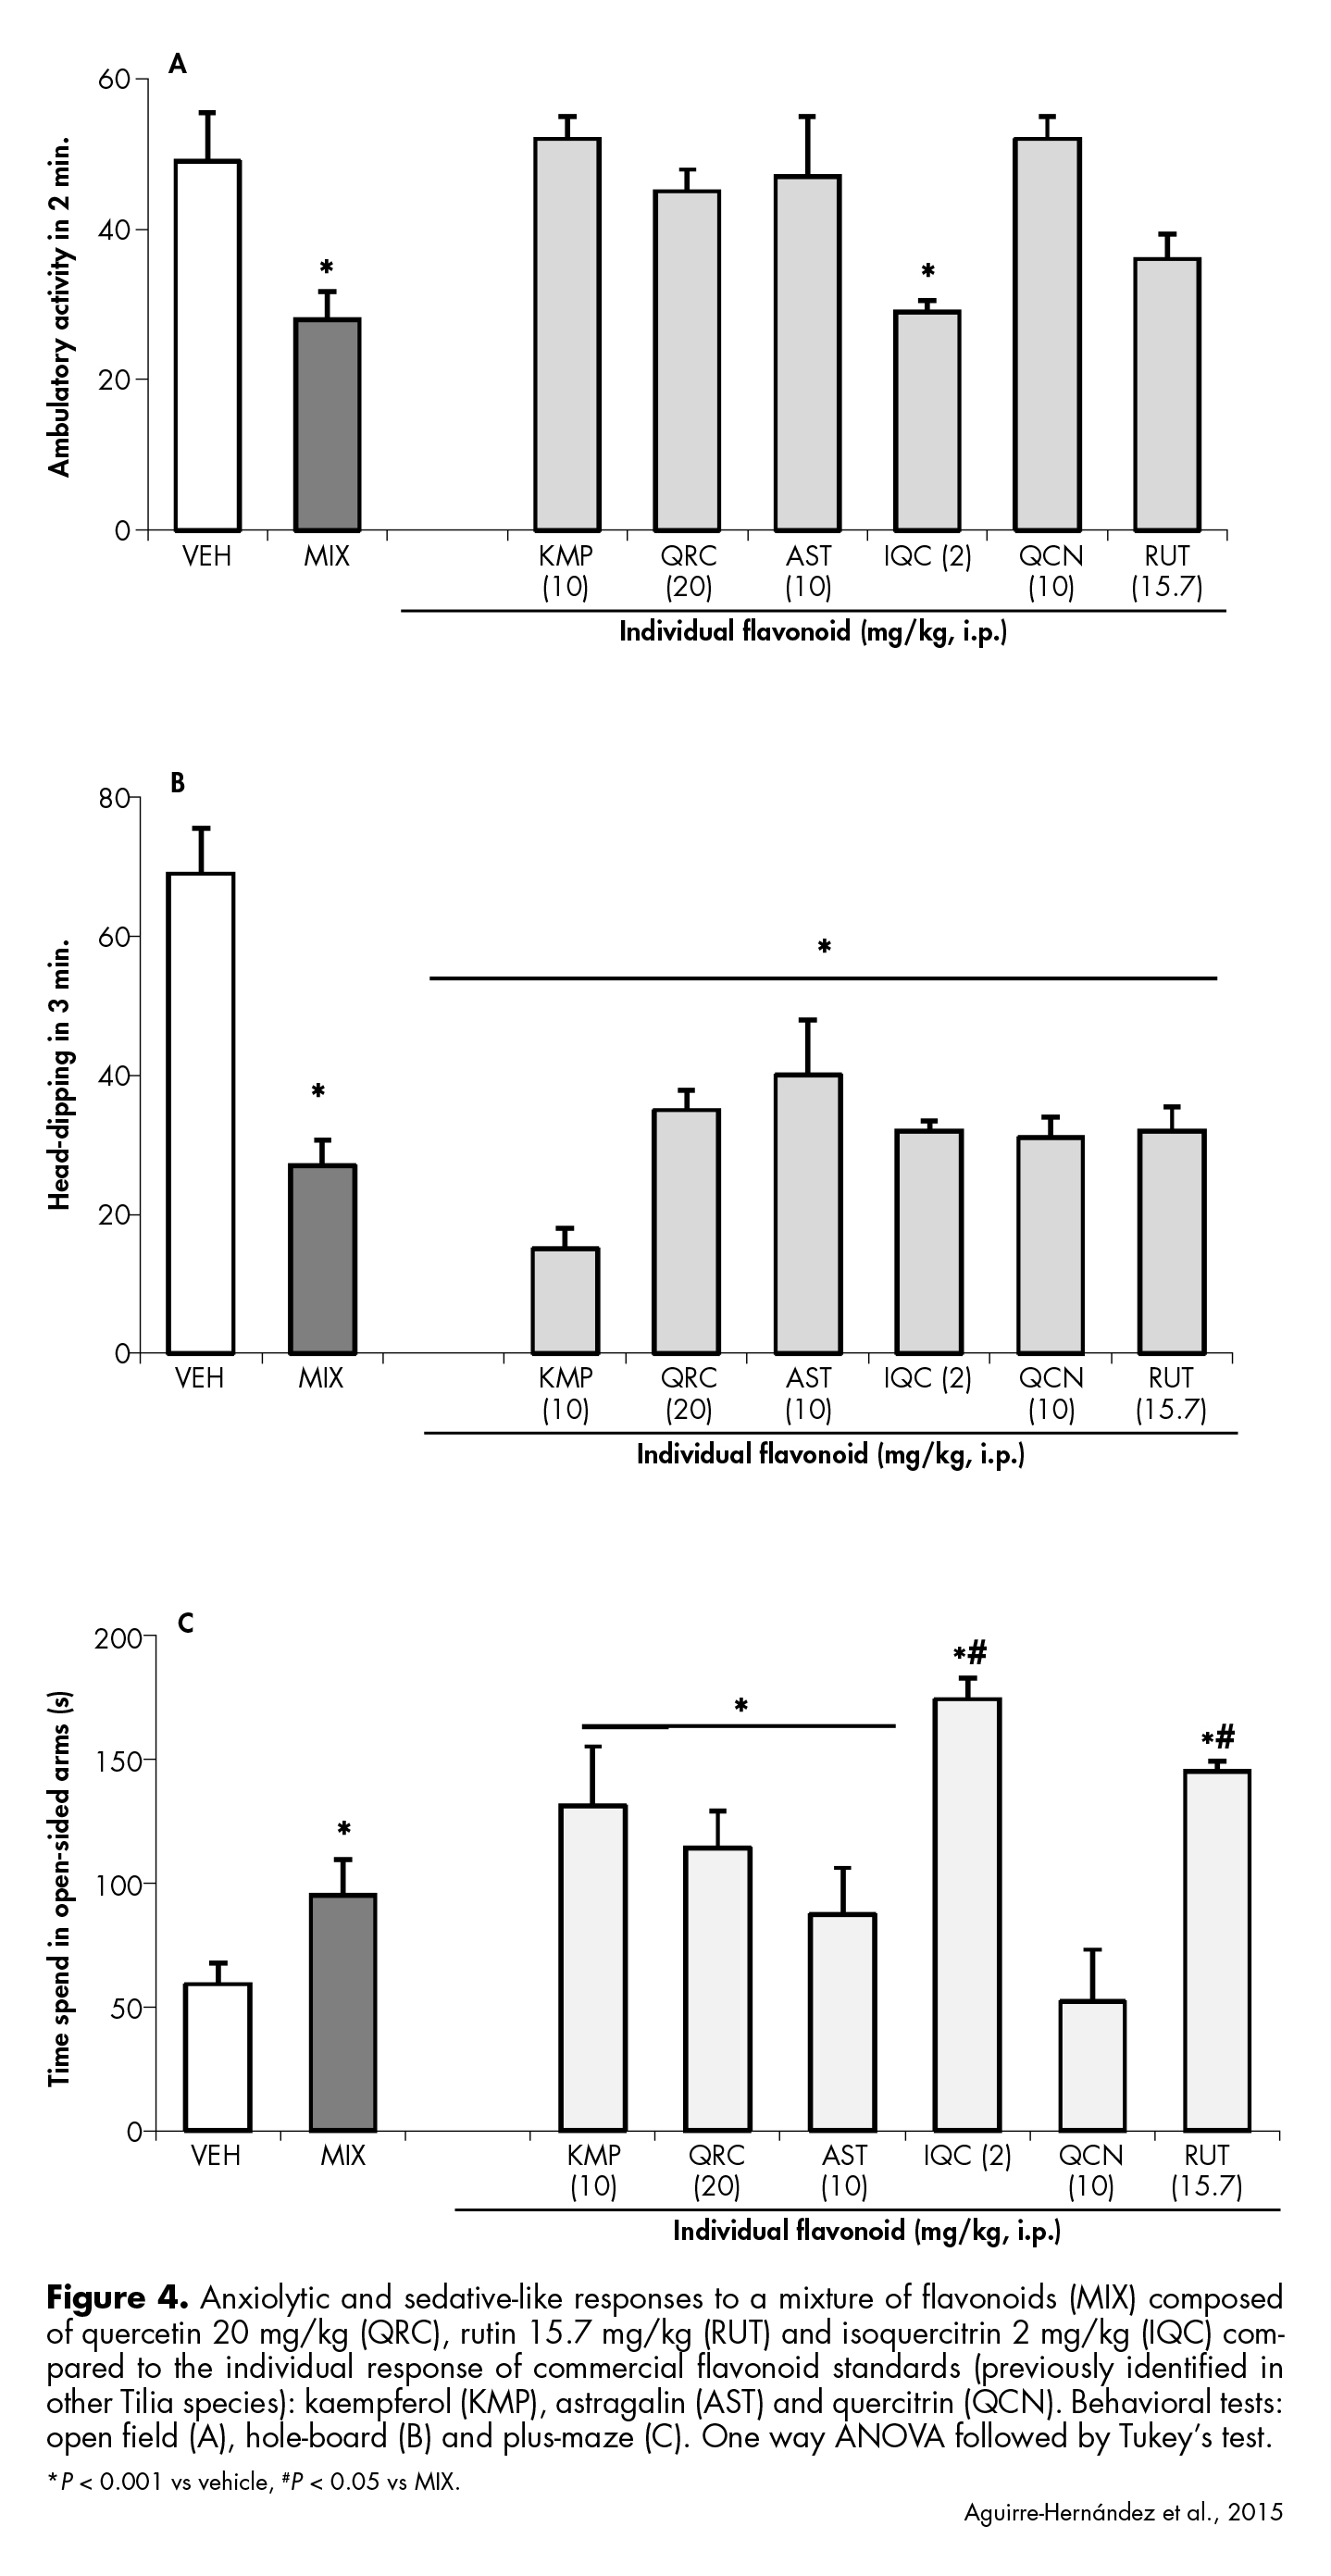 Anxiolytic and sedative-like responses to a mixture of flavonoids composed of quercetin, rutin and isoquercitrin compared to the individual response of commercial flavonoid standards.